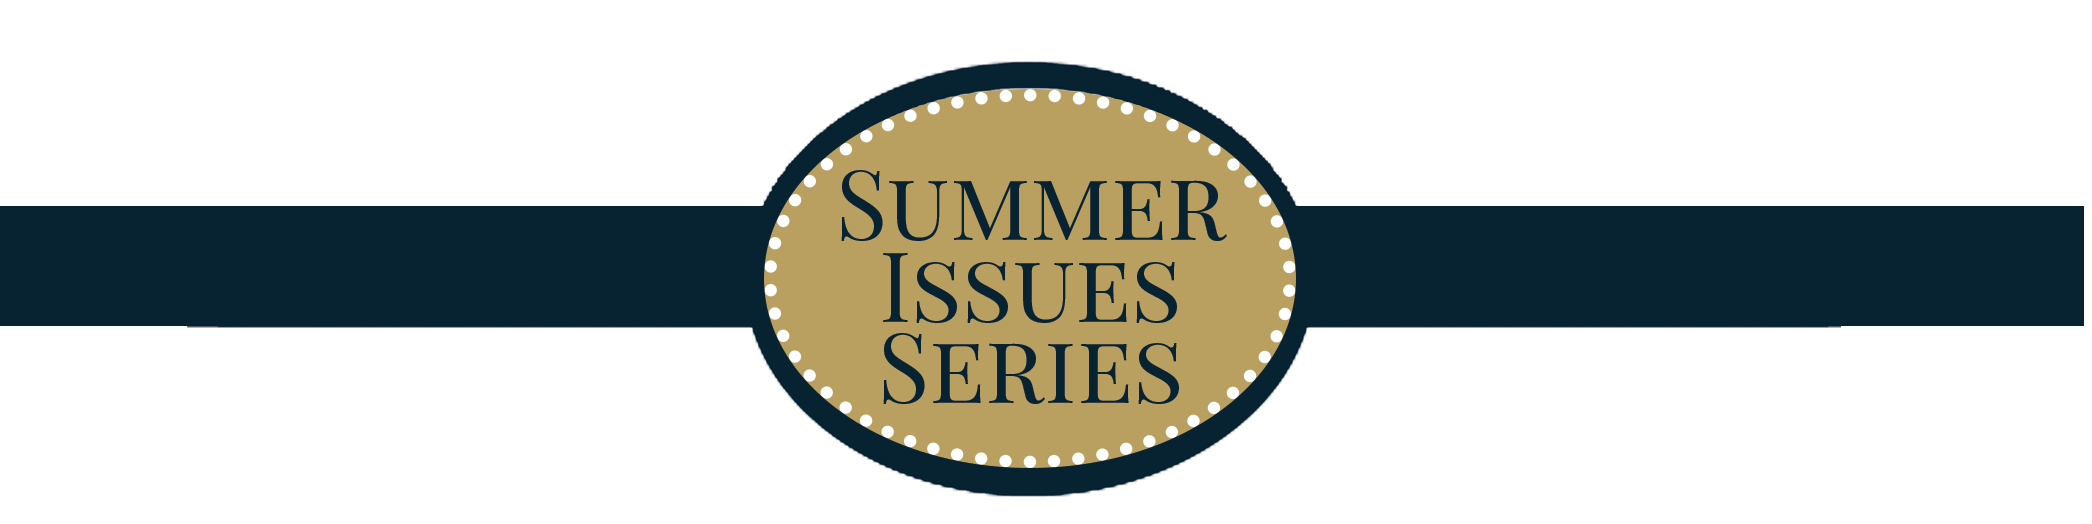 Summer Issues Series